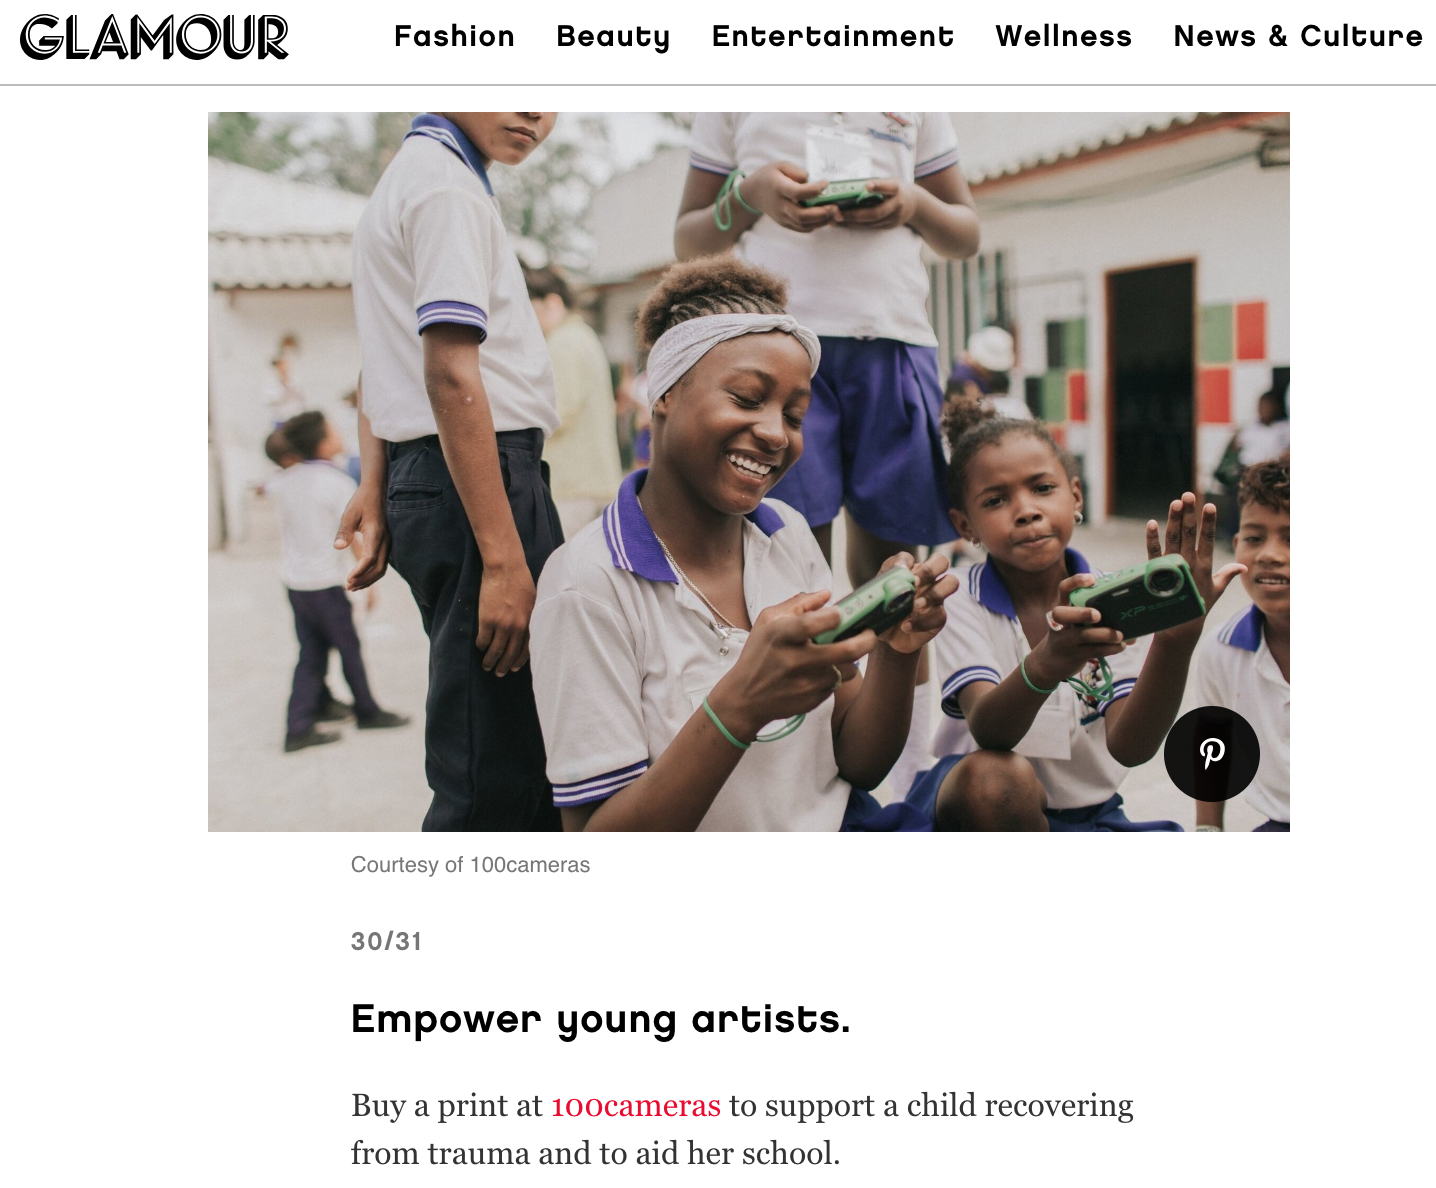 GLAMOUR - We are featured in Glamour Magazine for their